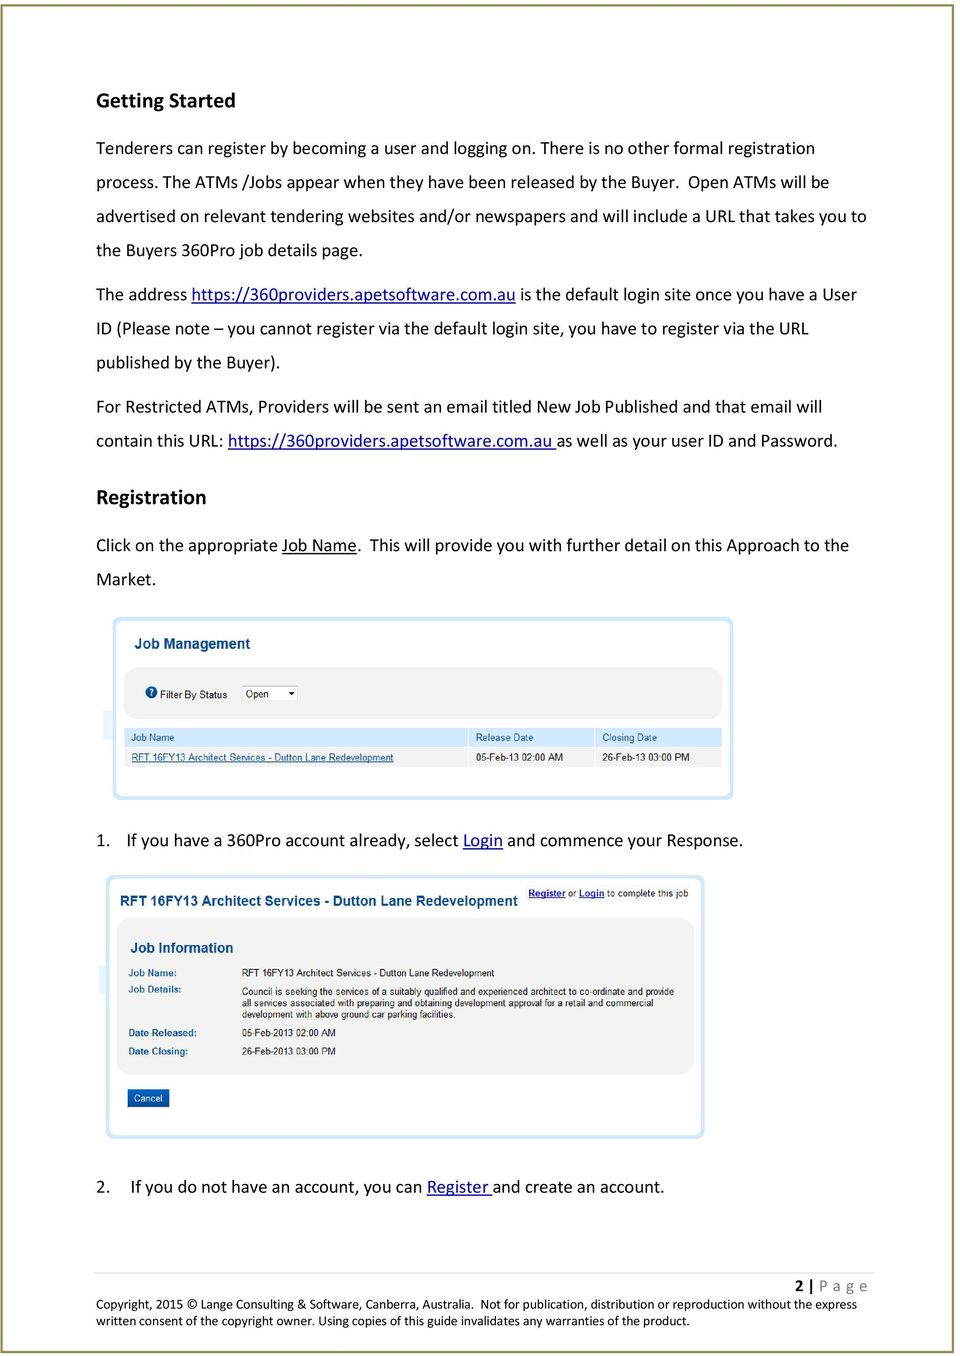 apetsoftware.com.au is the default login site once you have a User ID (Please note you cannot register via the default login site, you have to register via the URL published by the Buyer).